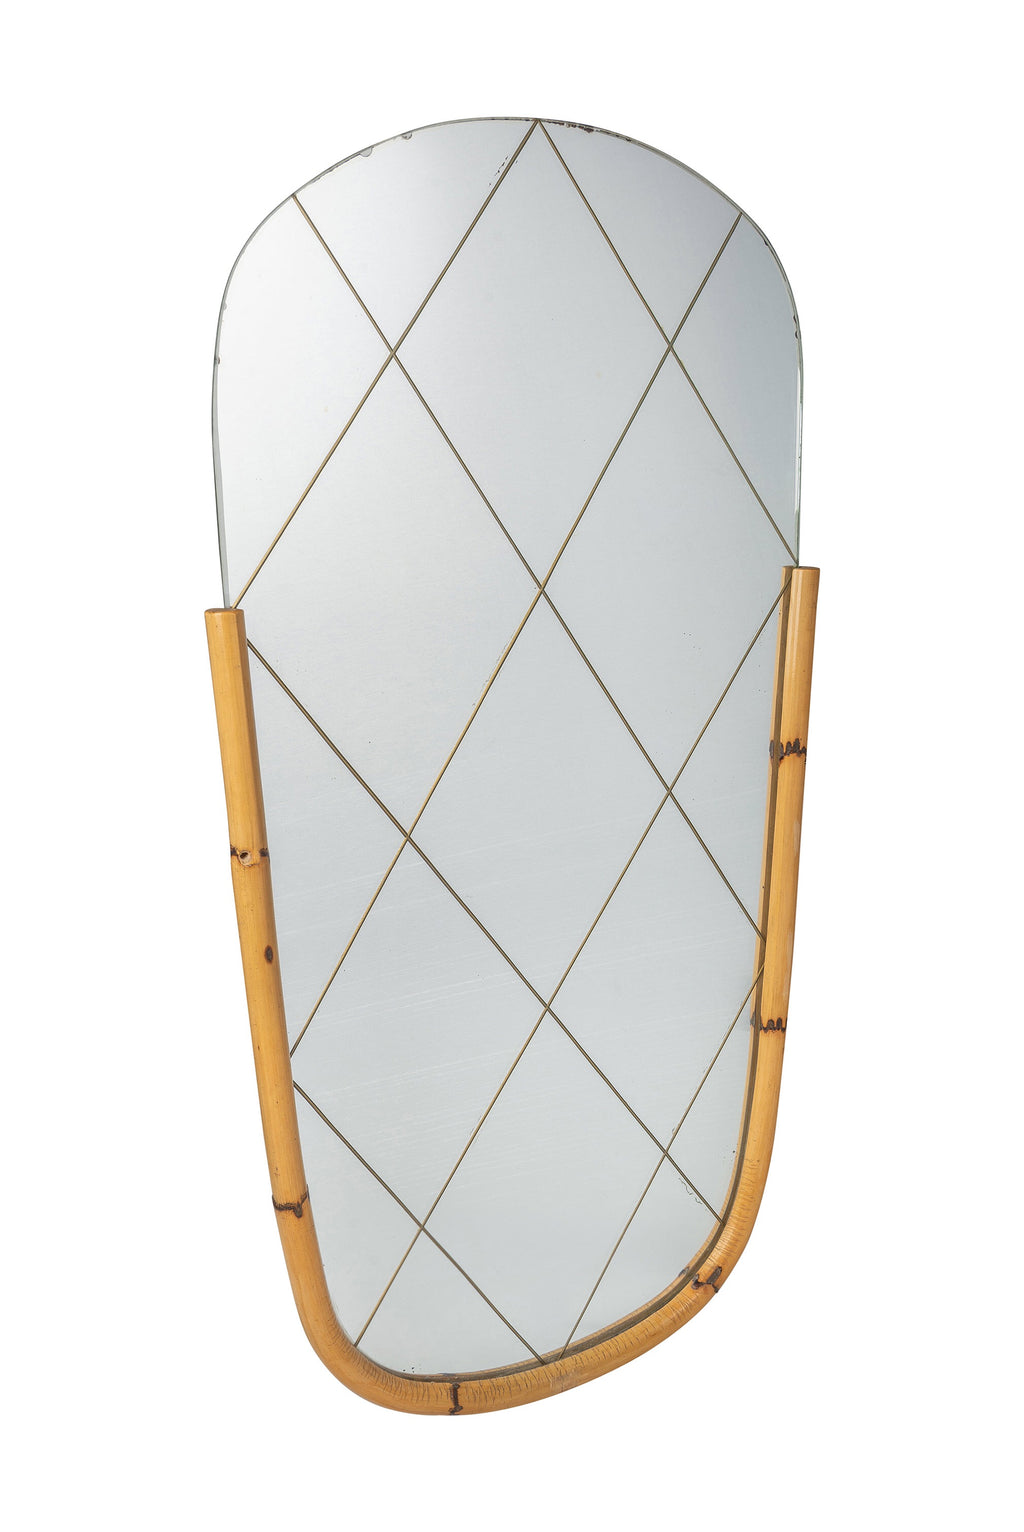 Vintage Bamboo Mirror 50's